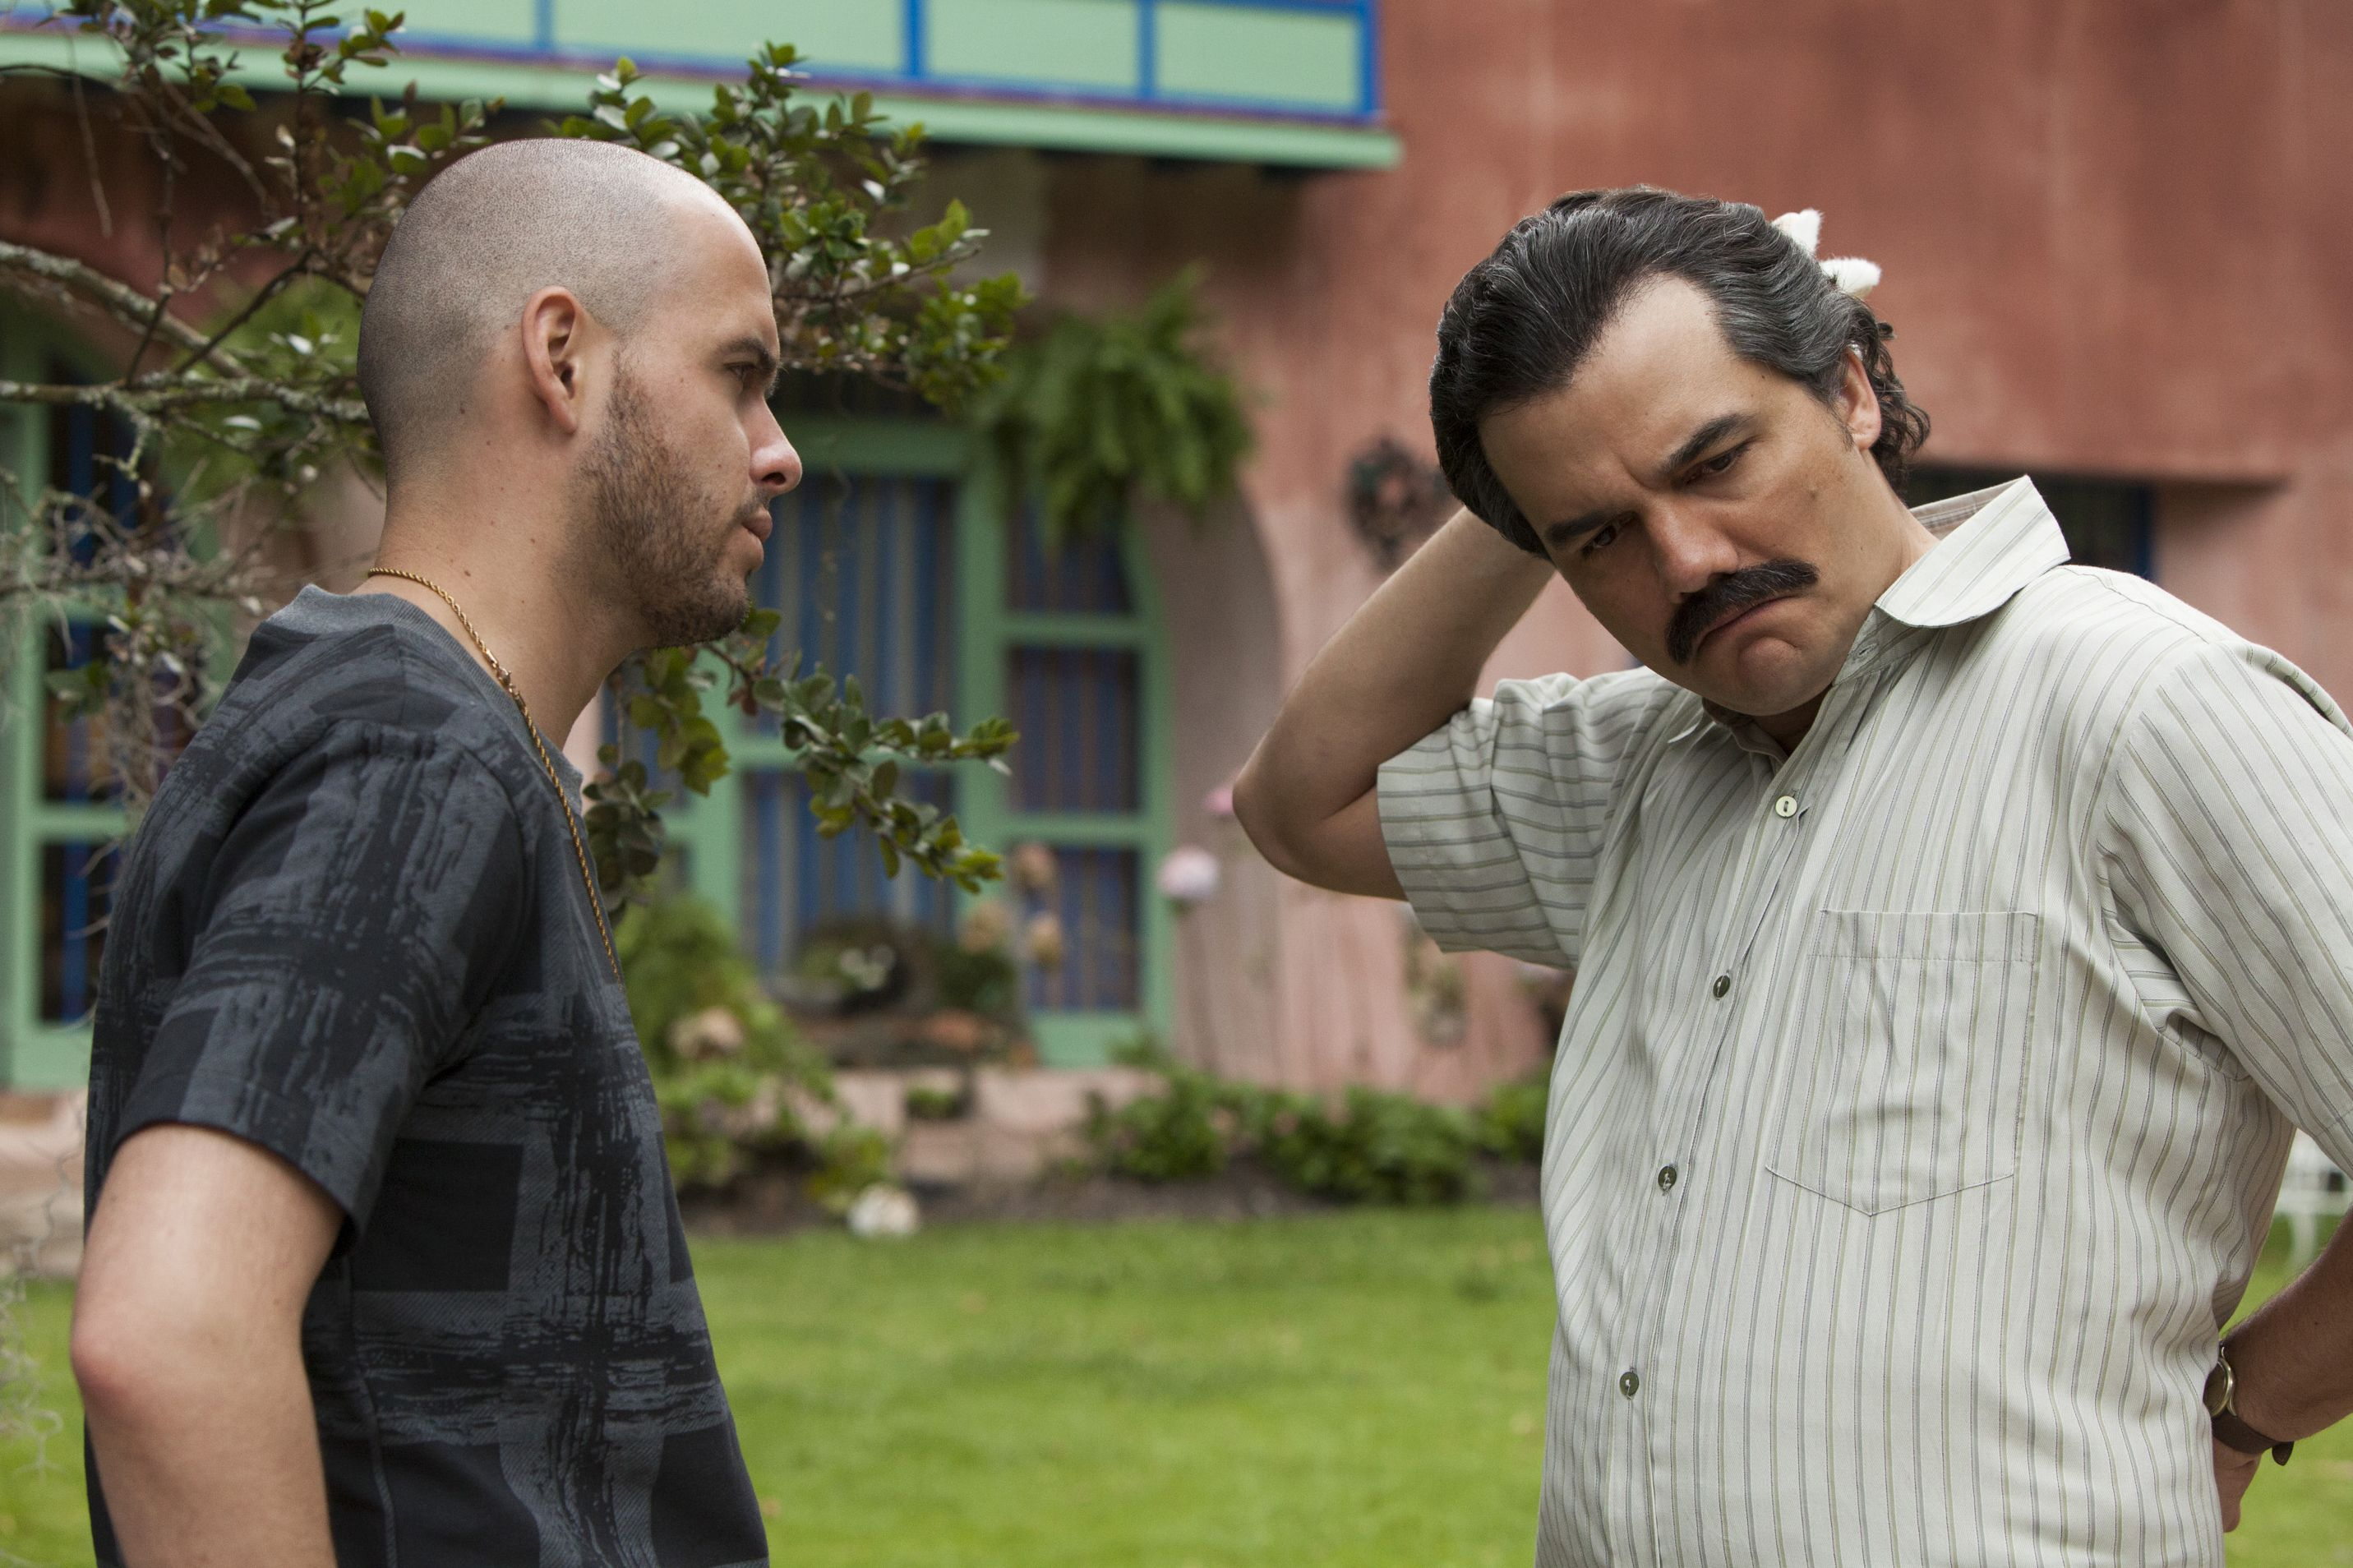 28 things factually wrong with Narcos, according to Pablo Escobar's